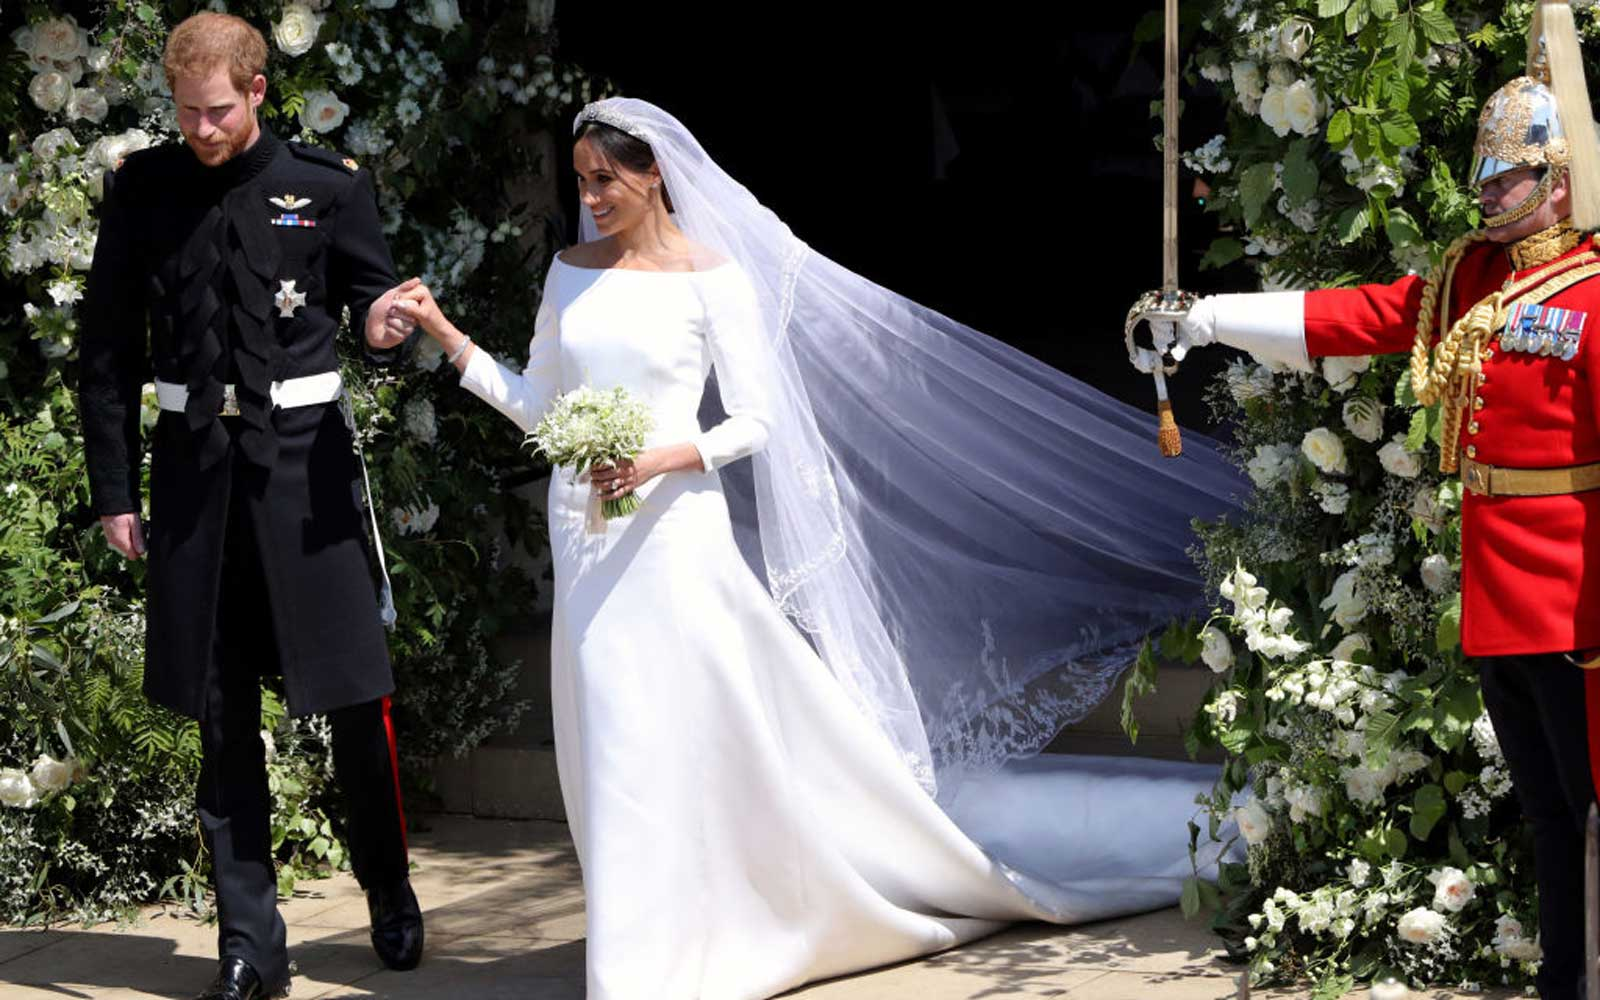 Britain's Prince Harry, Duke of Sussex and his wife Meghan, Duchess of Sussex emerge from the West Door of St George's Chapel, Windsor Castle, in Windsor, on May 19, 2018 after their wedding ceremony.